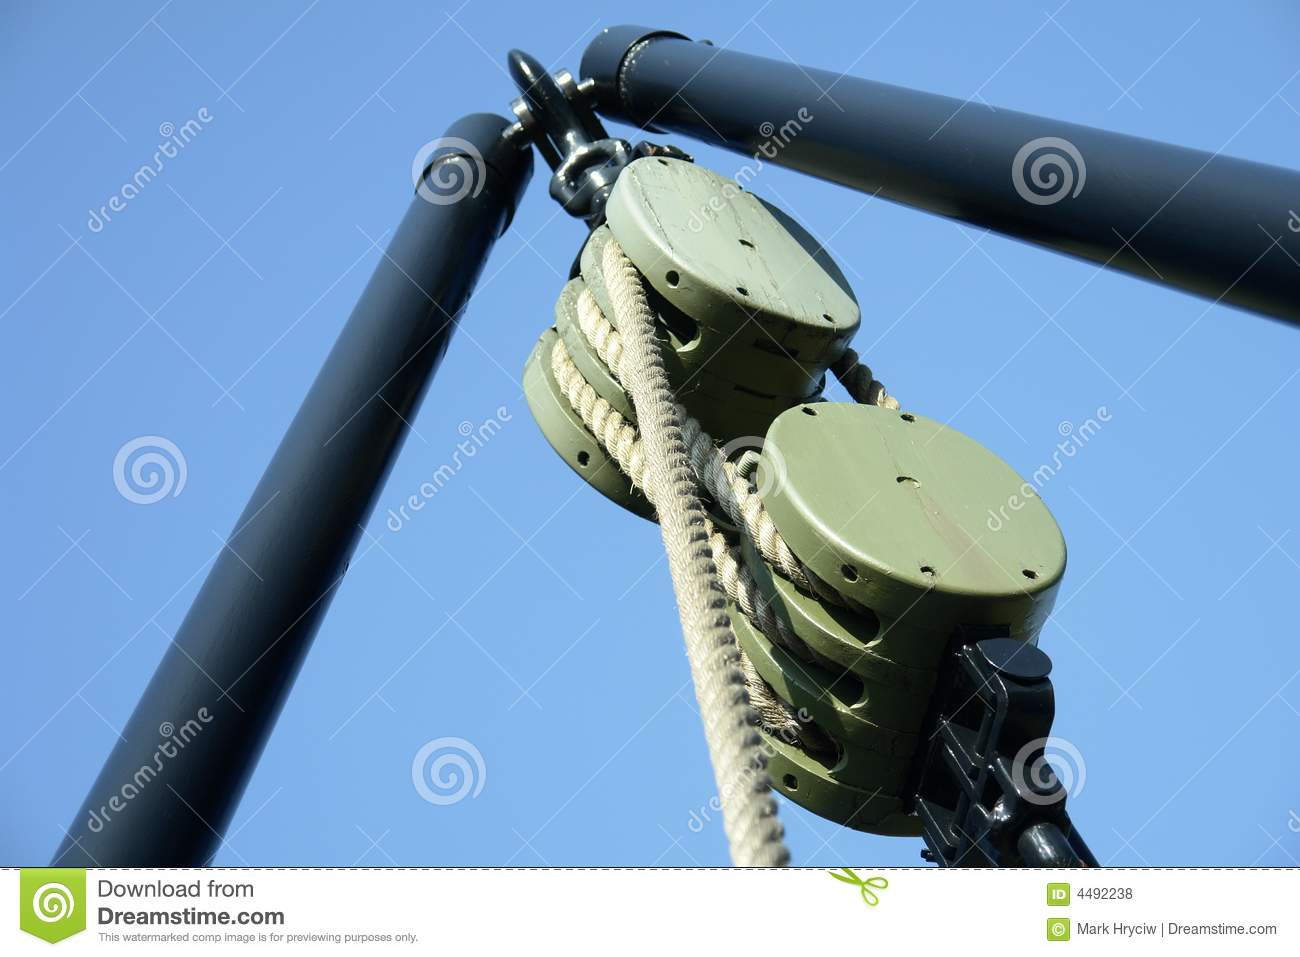 Lifting moreover Search as well Elevator Pulley also Delco Alternator Tach Wiring Diagram further page 3. on crane pulley